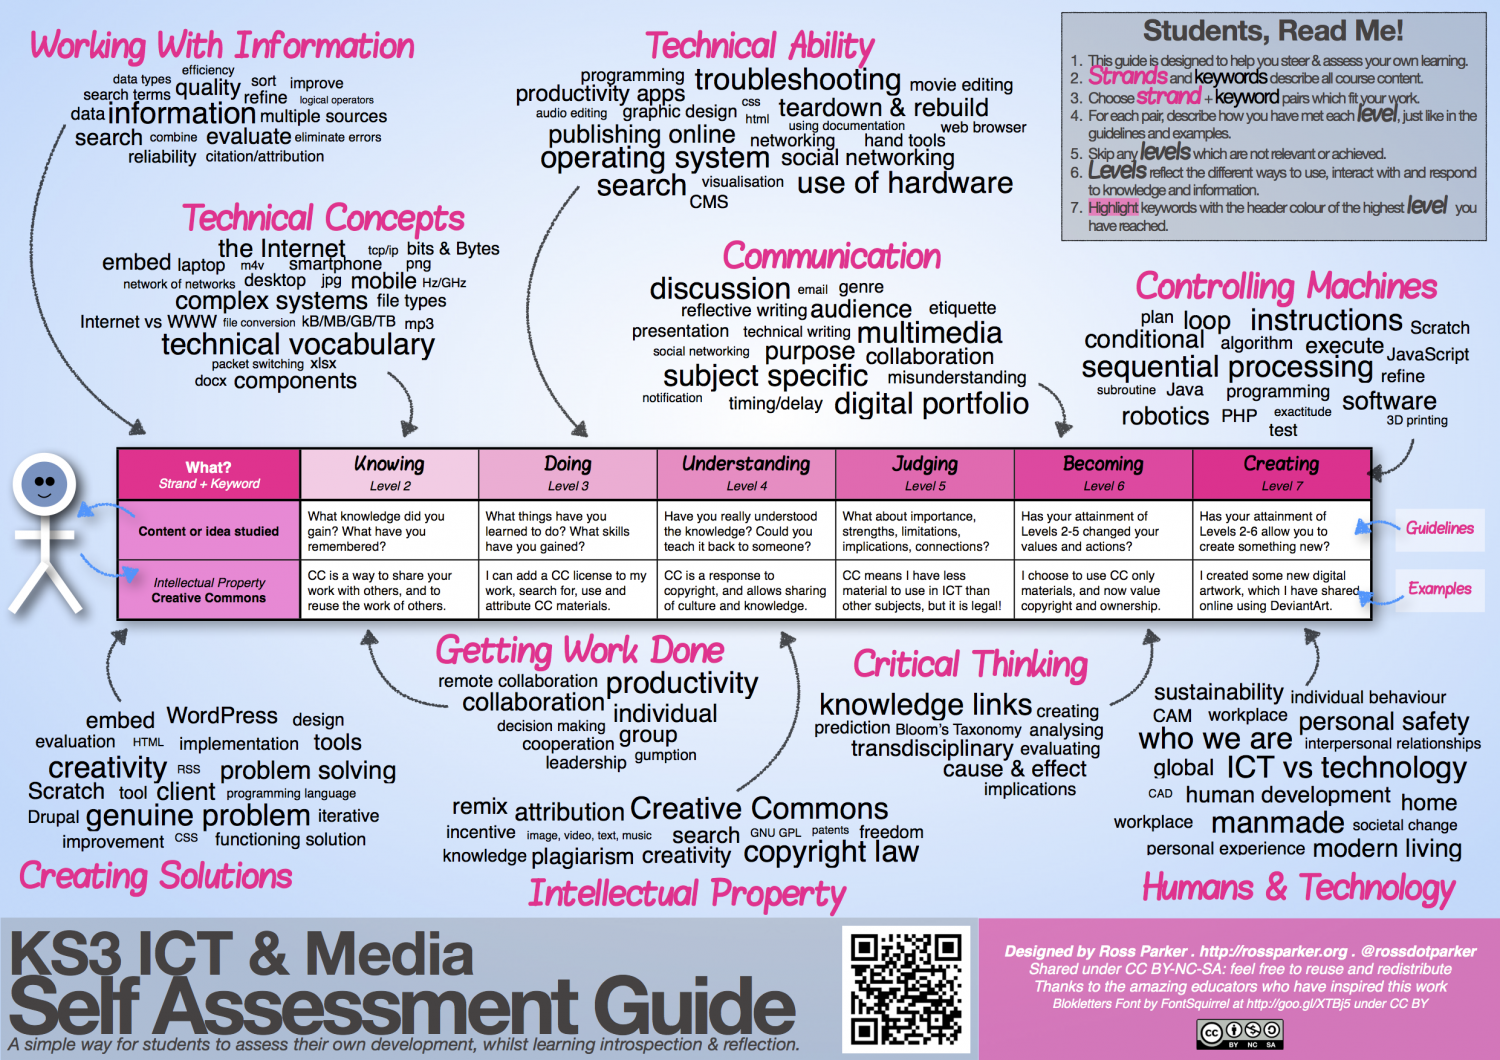 KS3 ICT & Media Self Assessment Guide Infographic